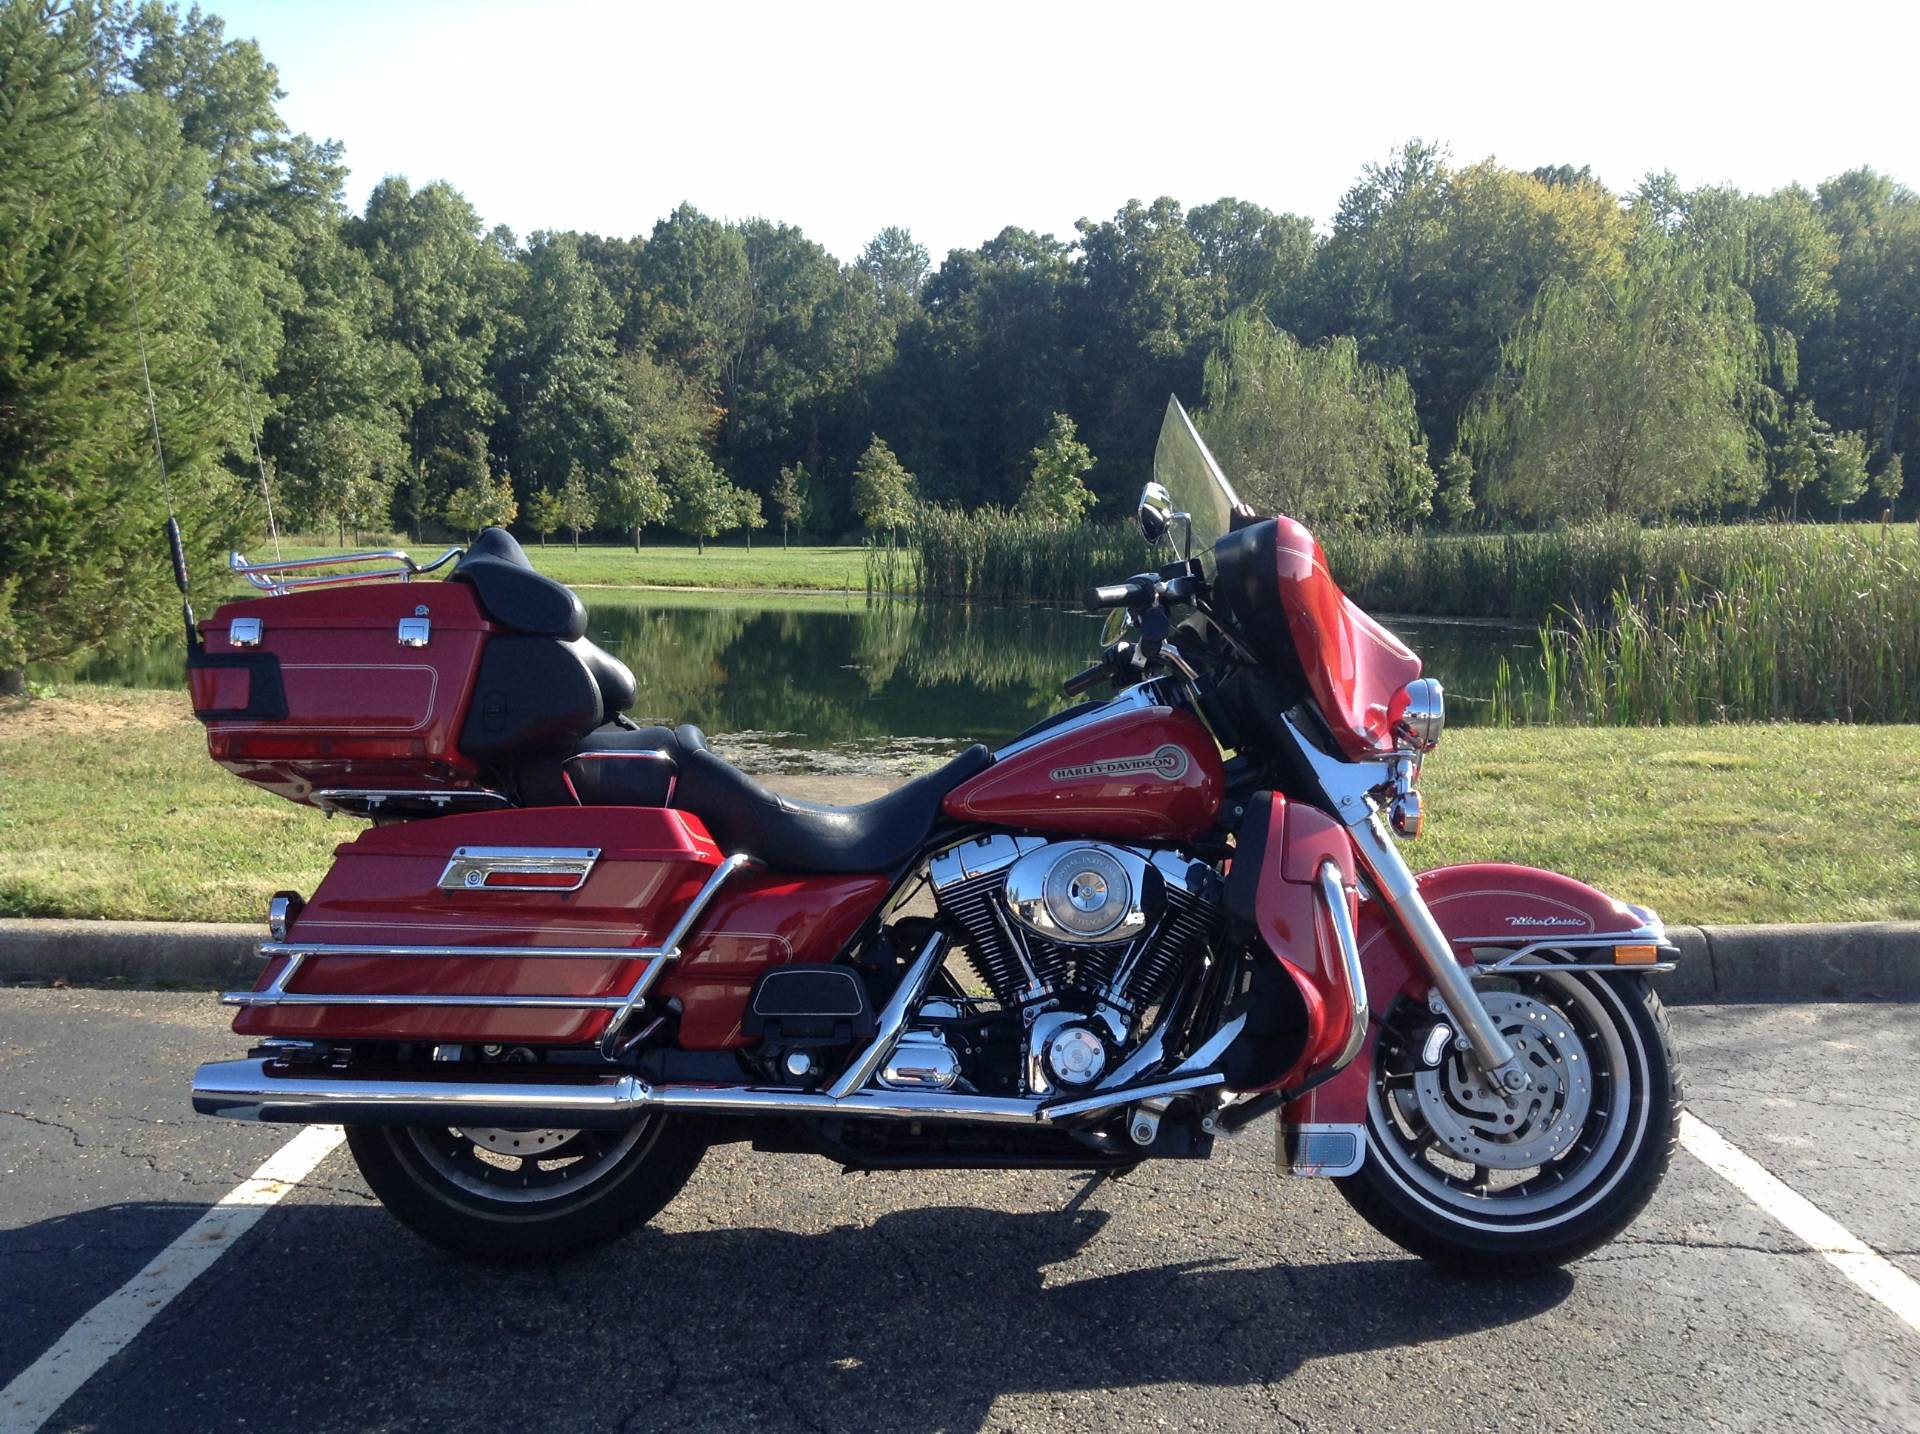 2005 Harley-Davidson FLHTCUI Ultra Classic® Electra Glide® Firefighter Special Edition in Sunbury, Ohio - Photo 1